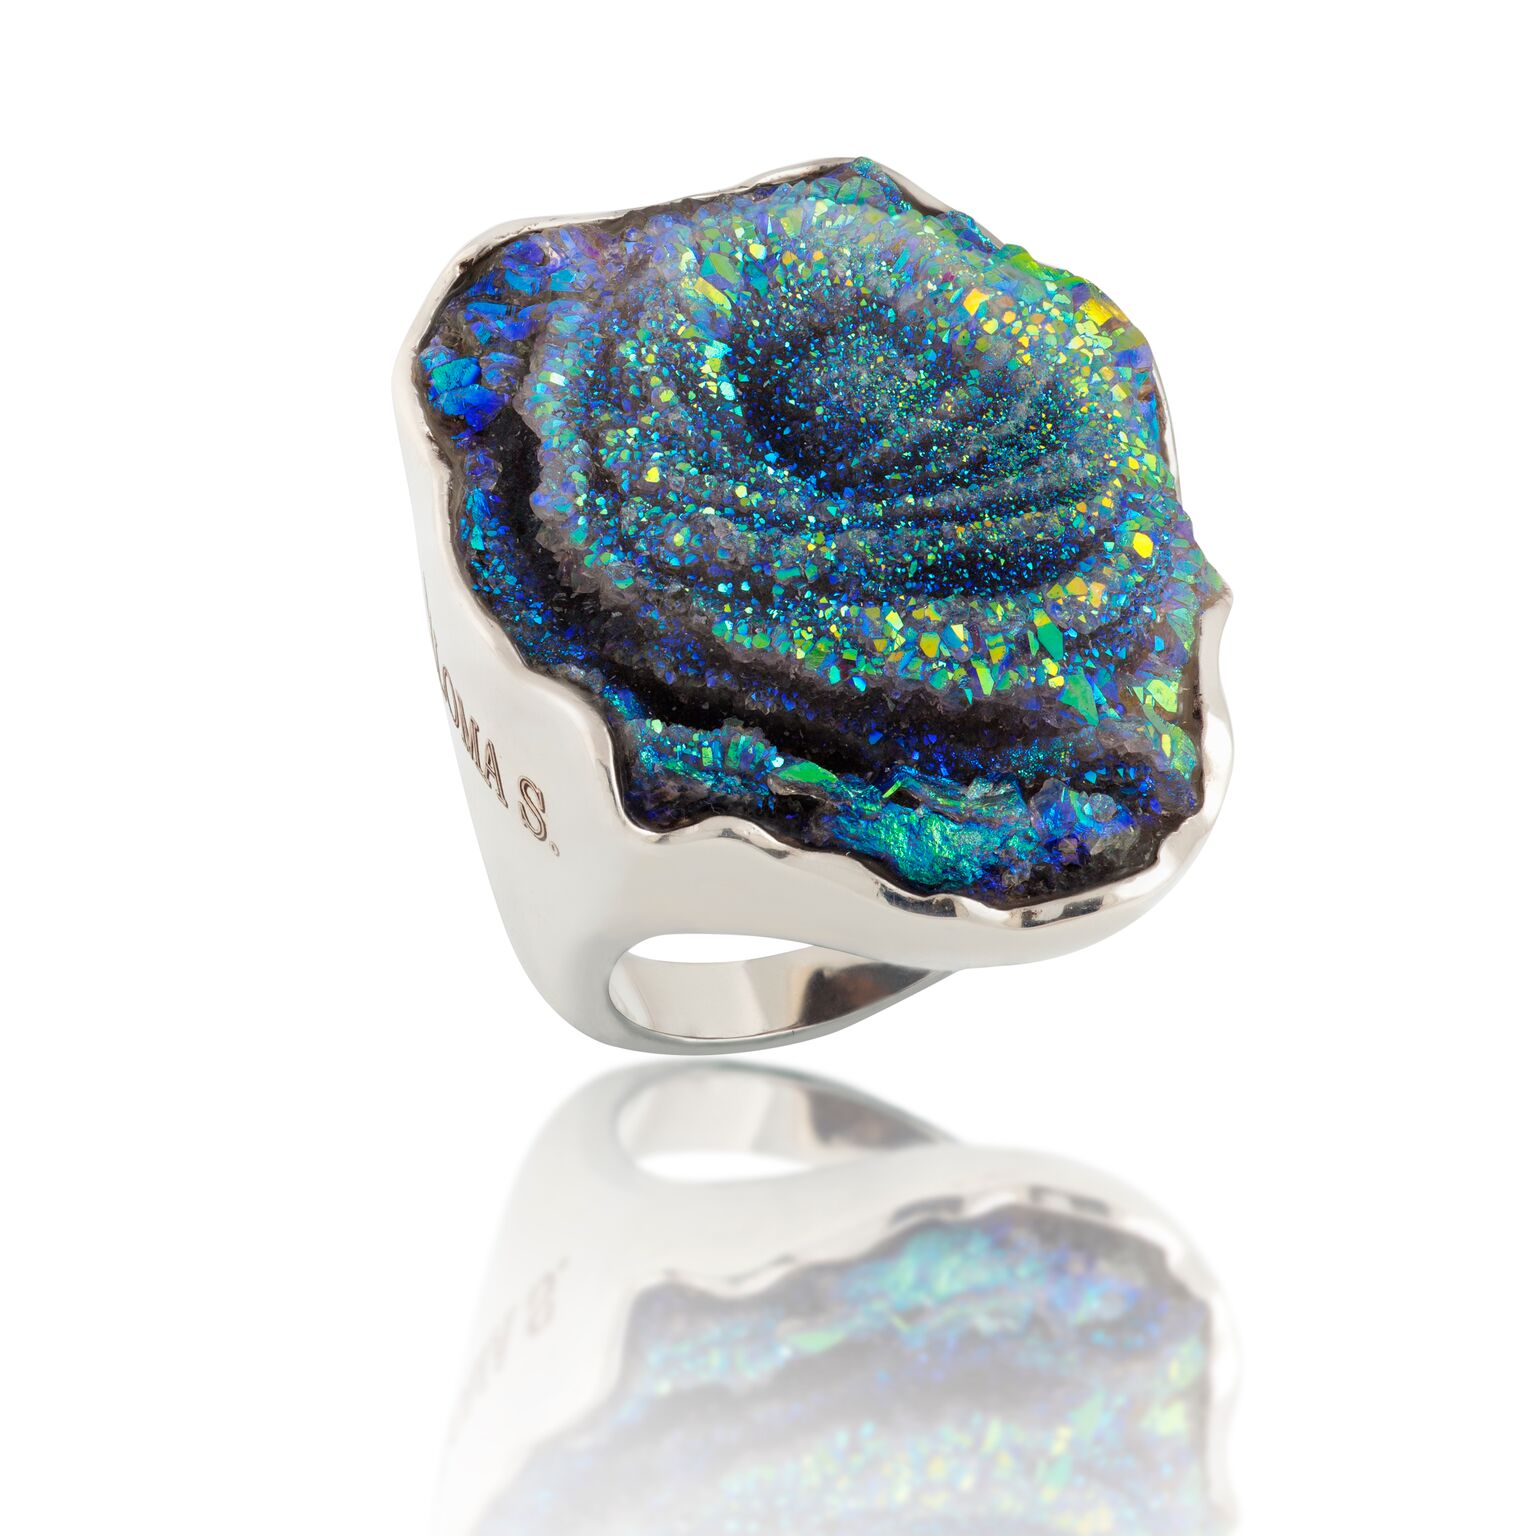 Druzy quartz infused with titanium, set in 18K white gold-plated silver ring